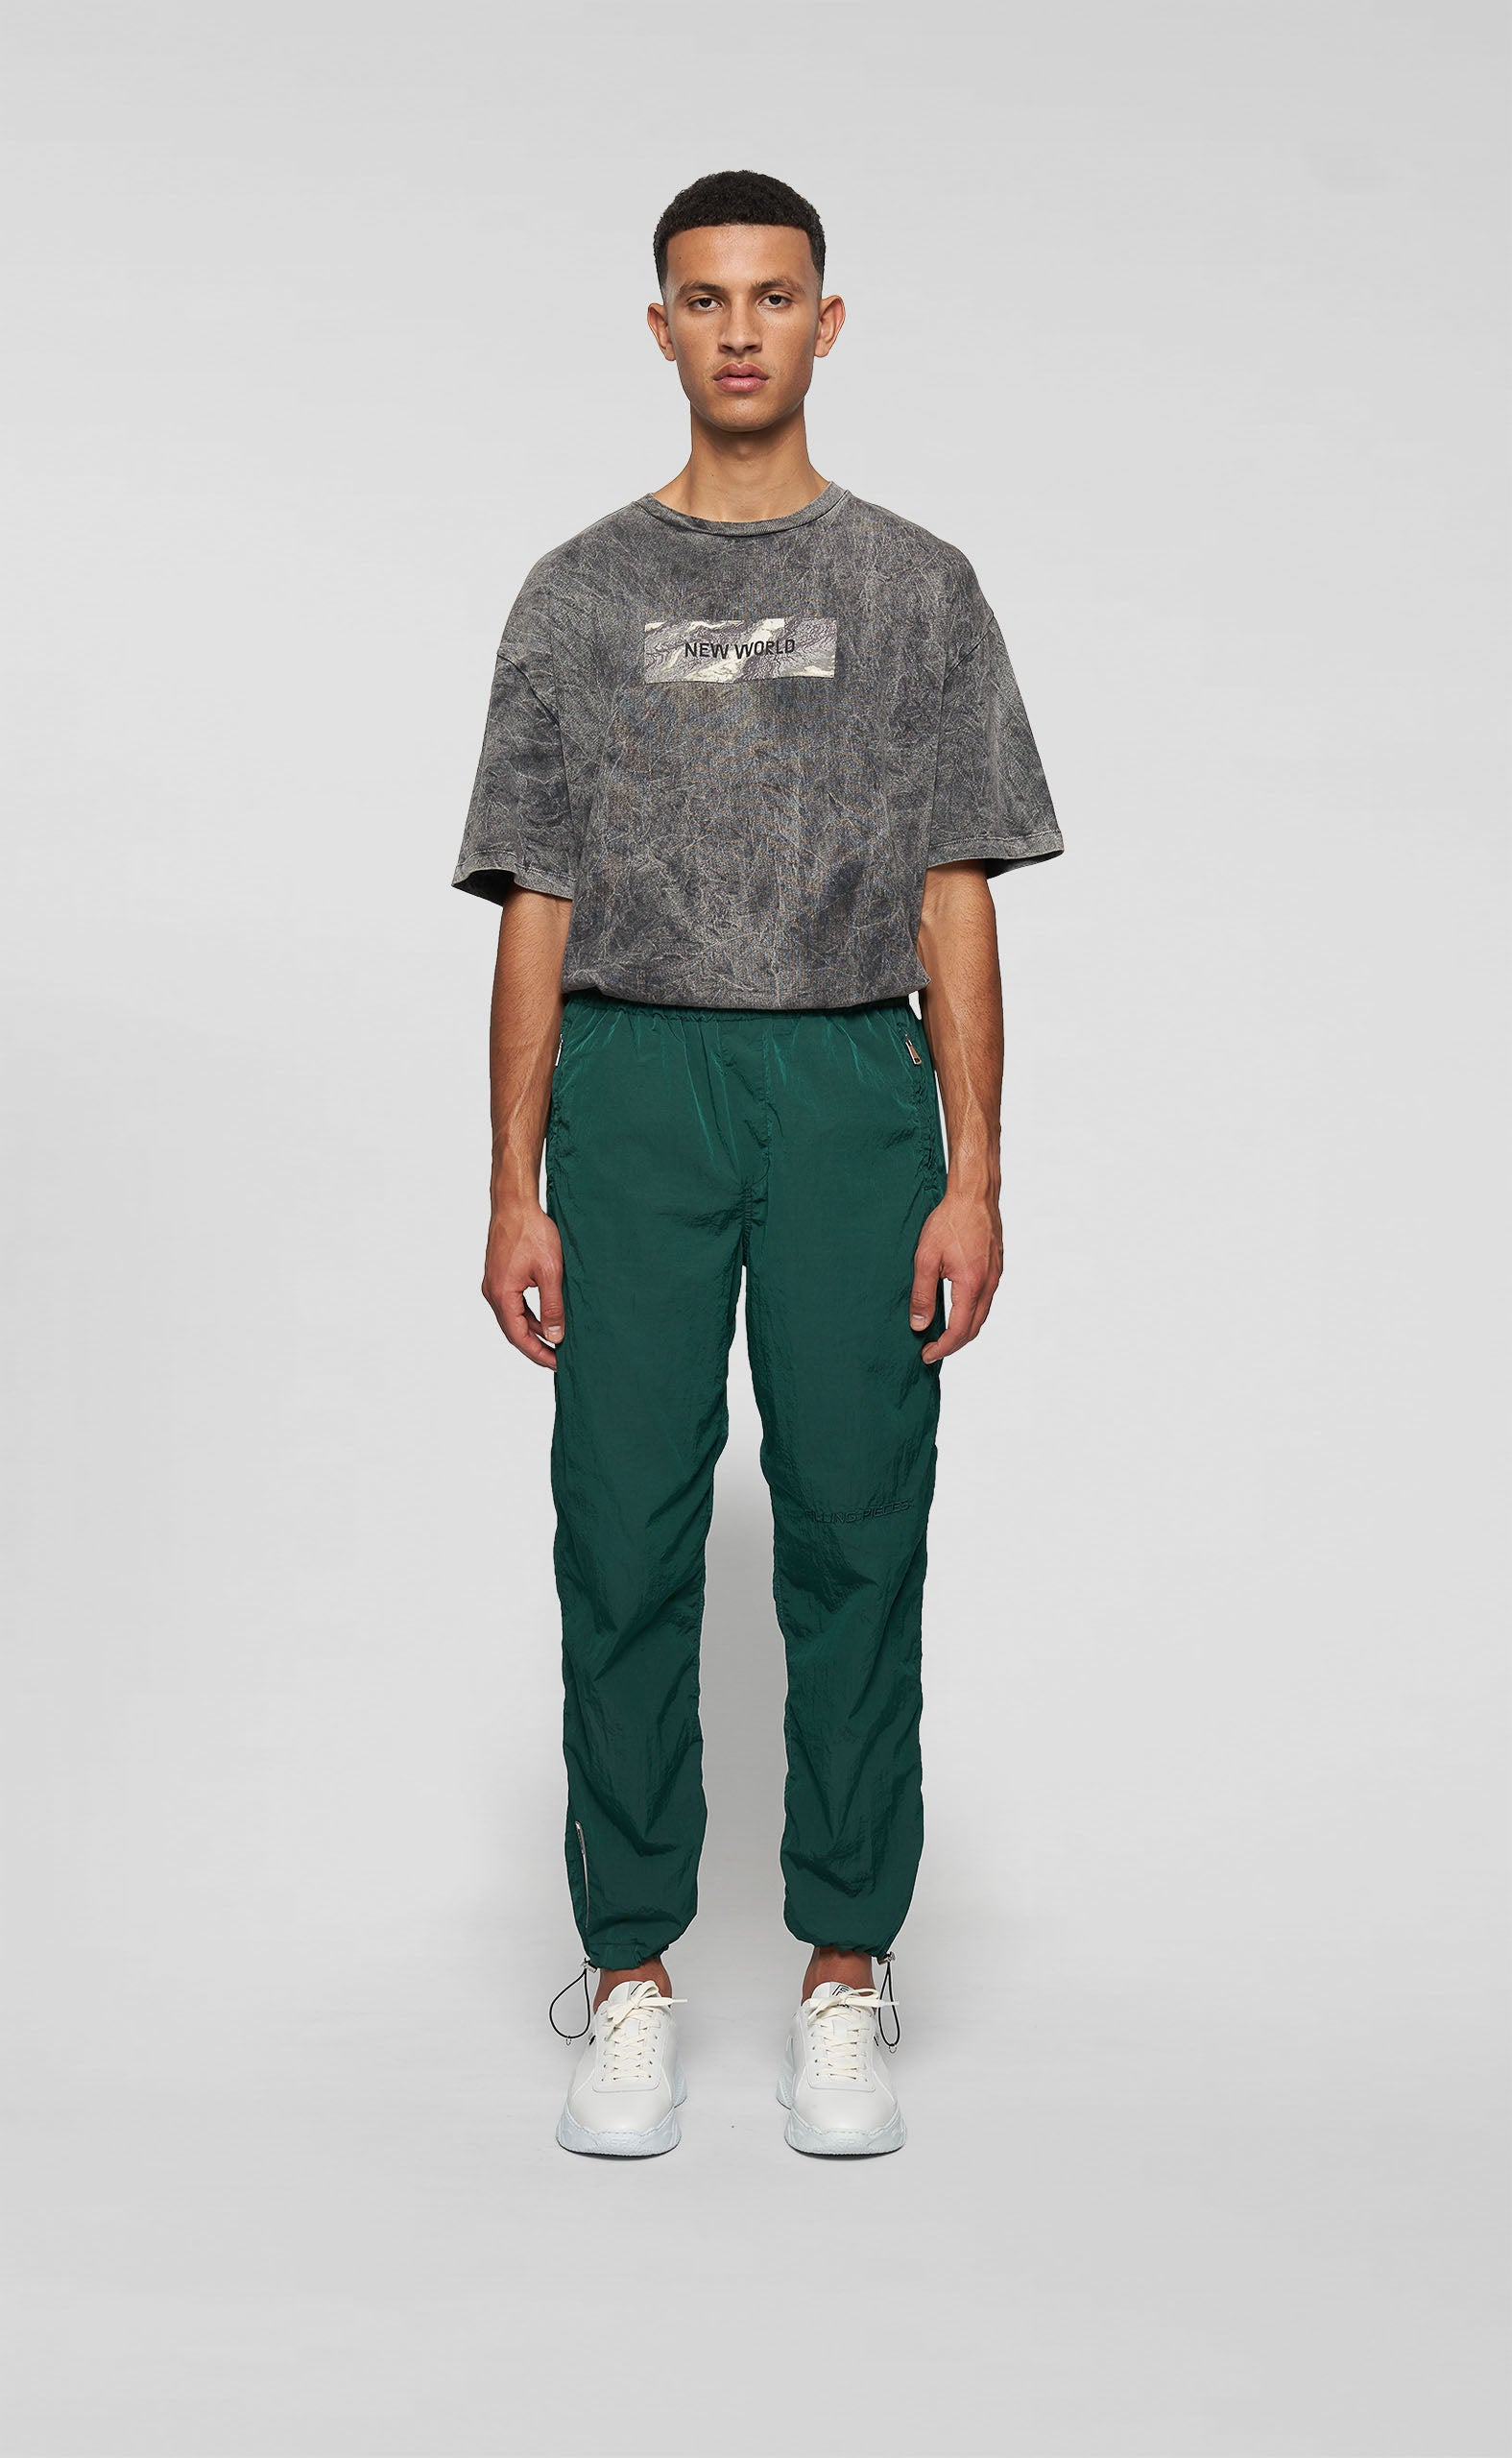 NYLON CORD PANTS SEA MOSS - men